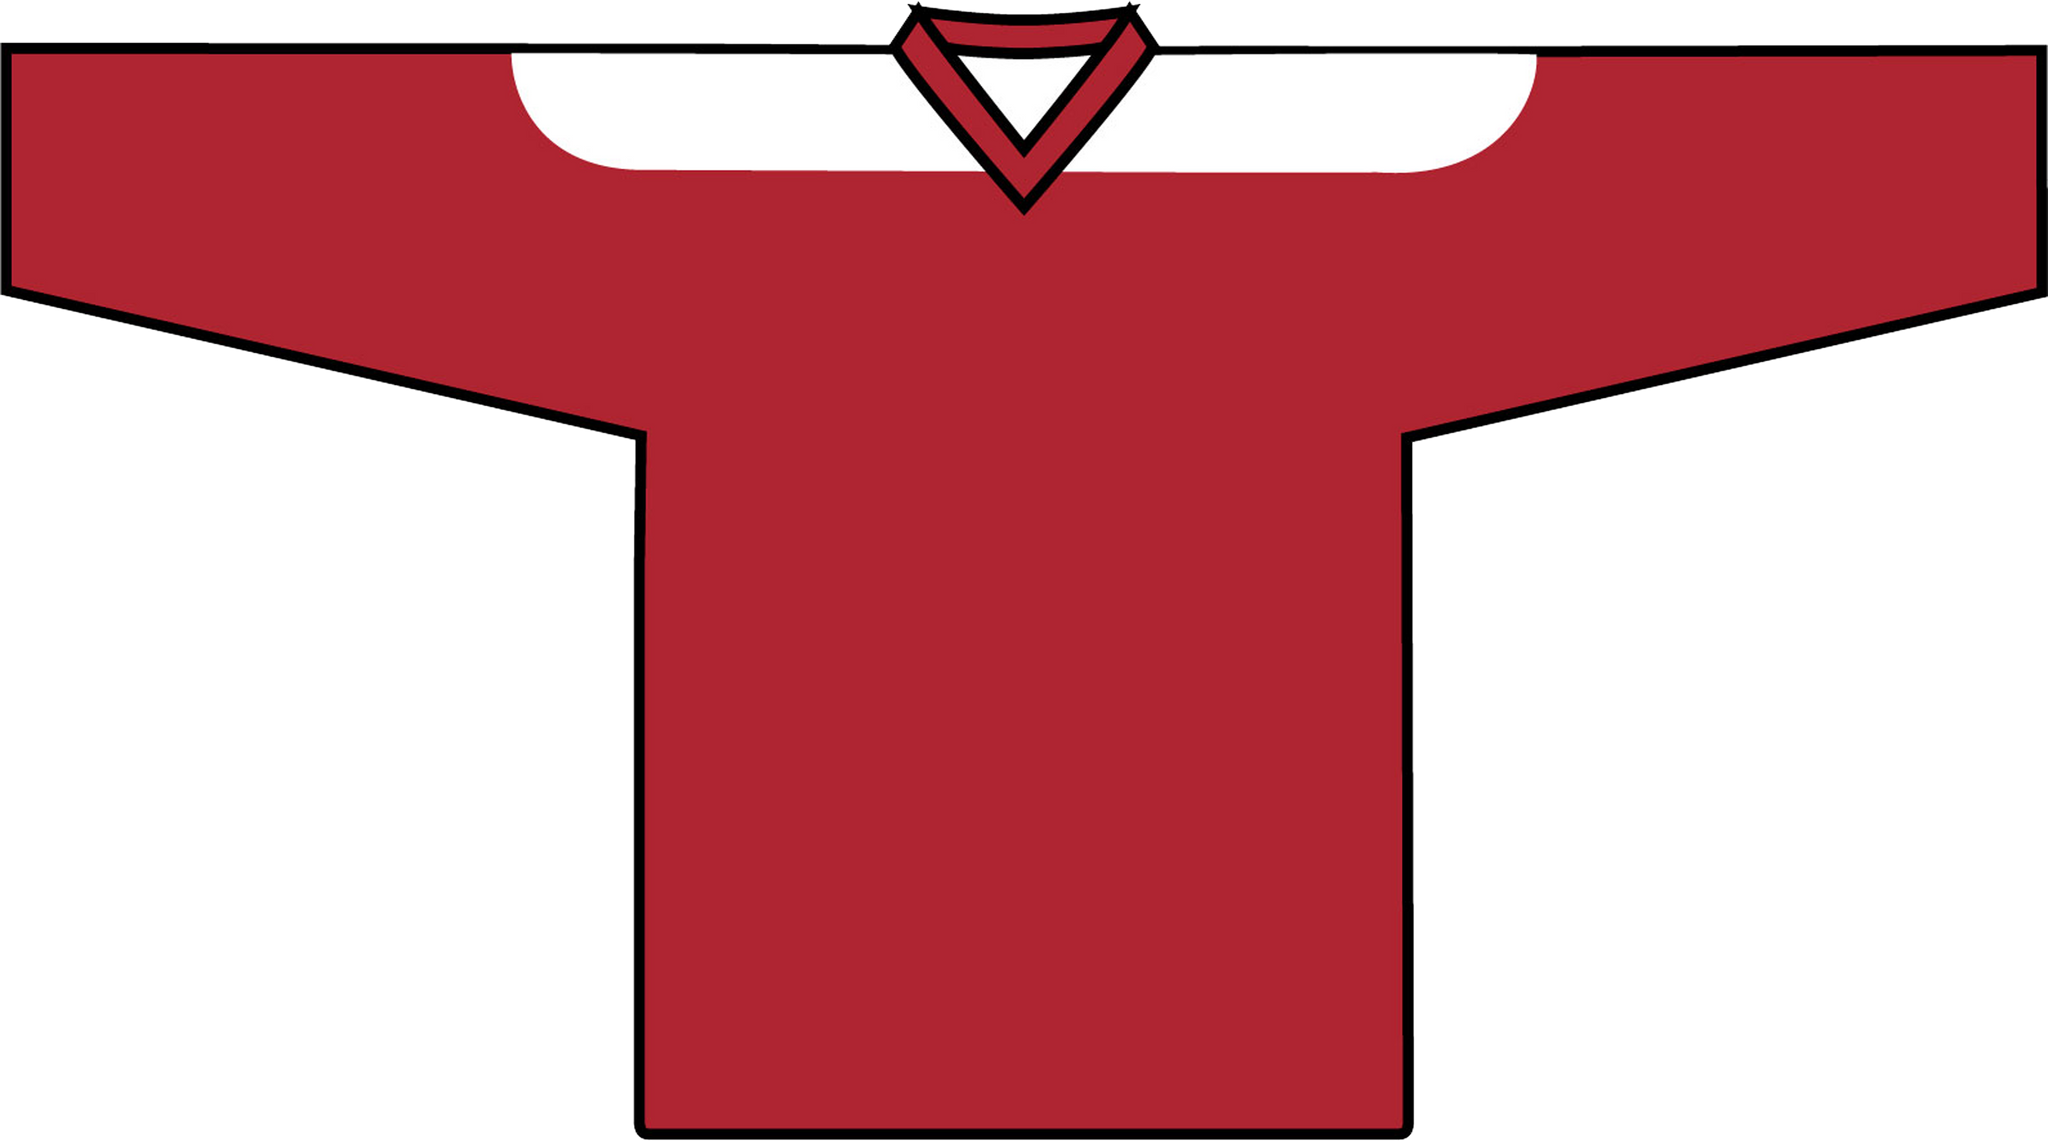 Full Team - League Jerseys - Mid-Weight Pro Knit (15 Players)